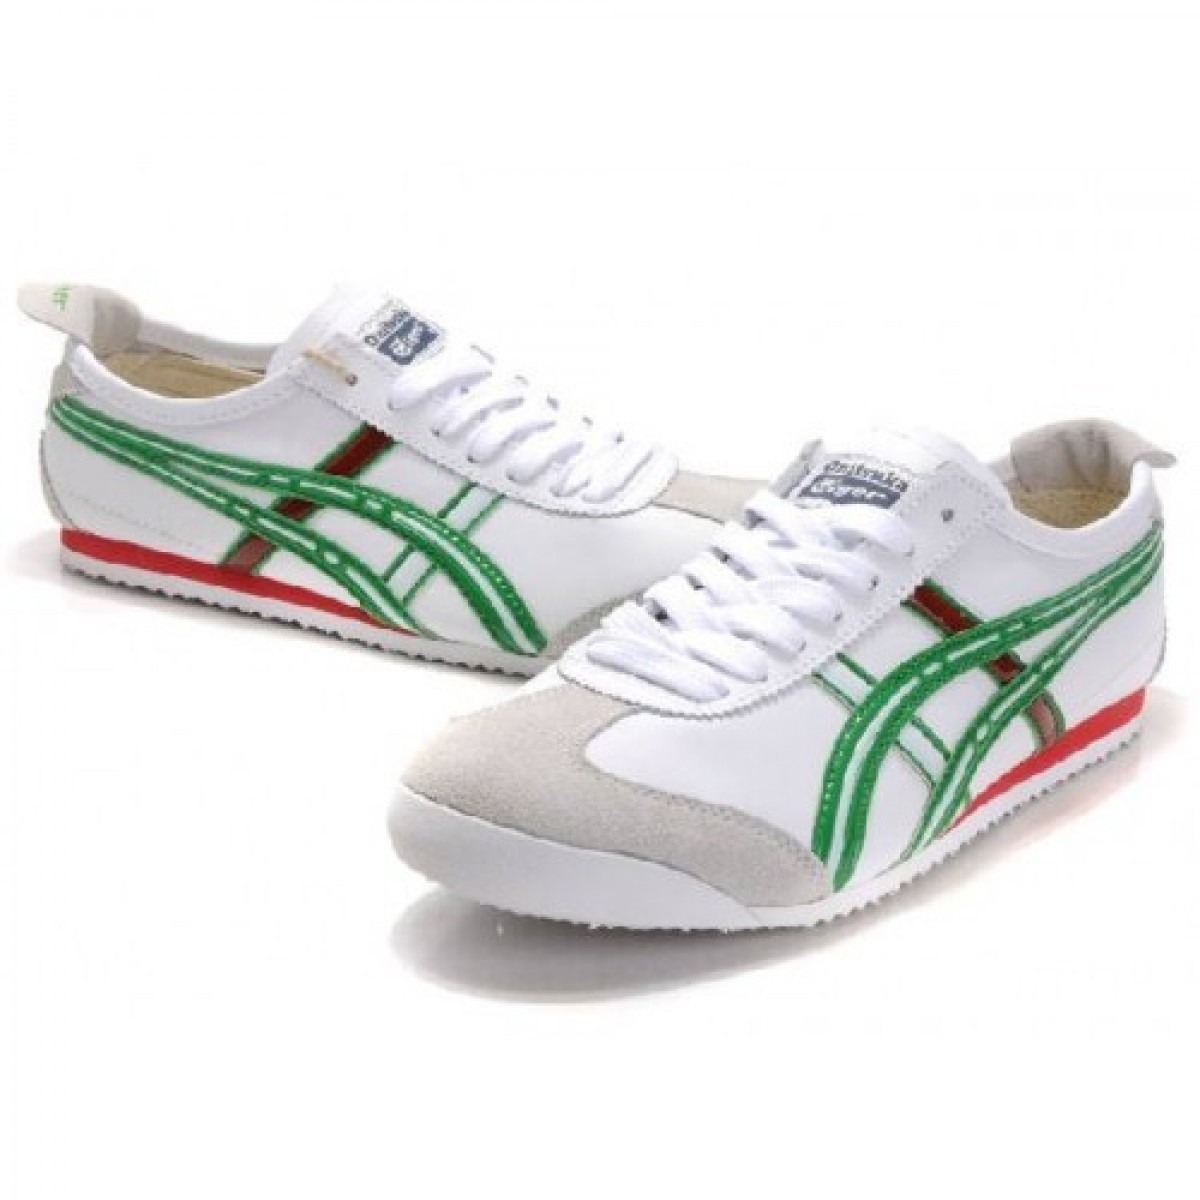 QF2662 Soldes Asics Mexico 66 Blanc Vert Red Shoes 79513933 Pas Cher